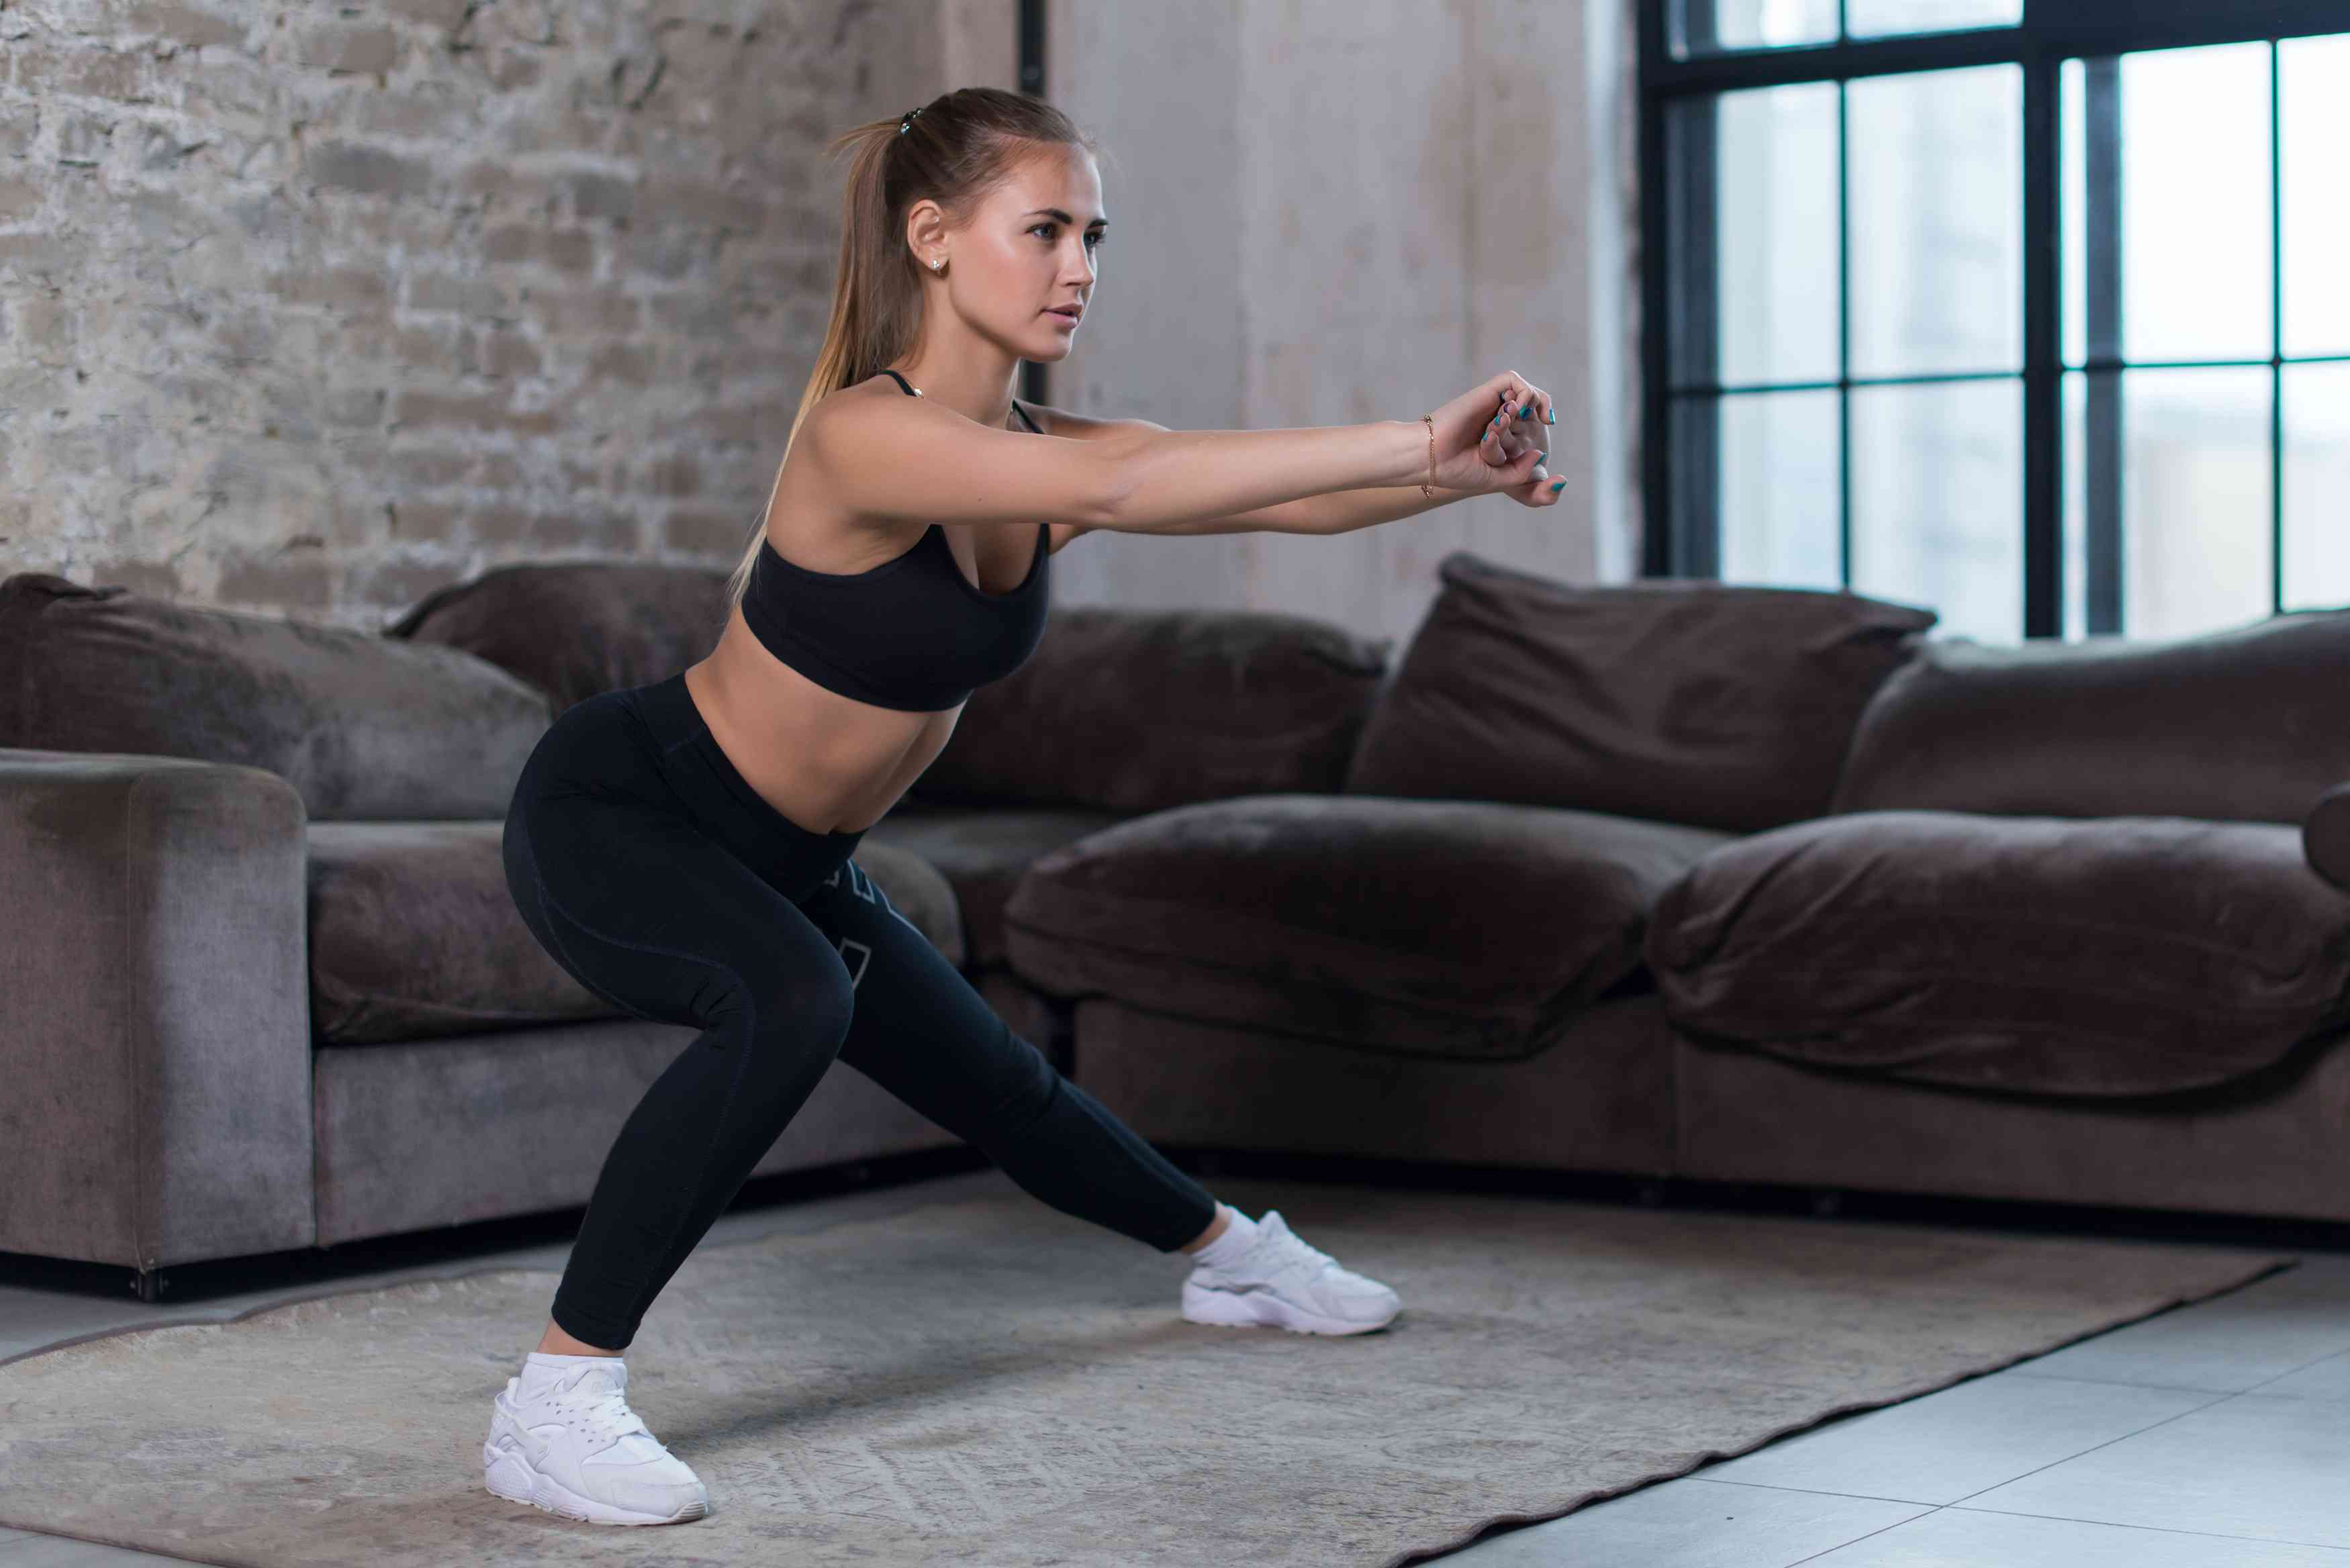 woman doing side lunge exercise